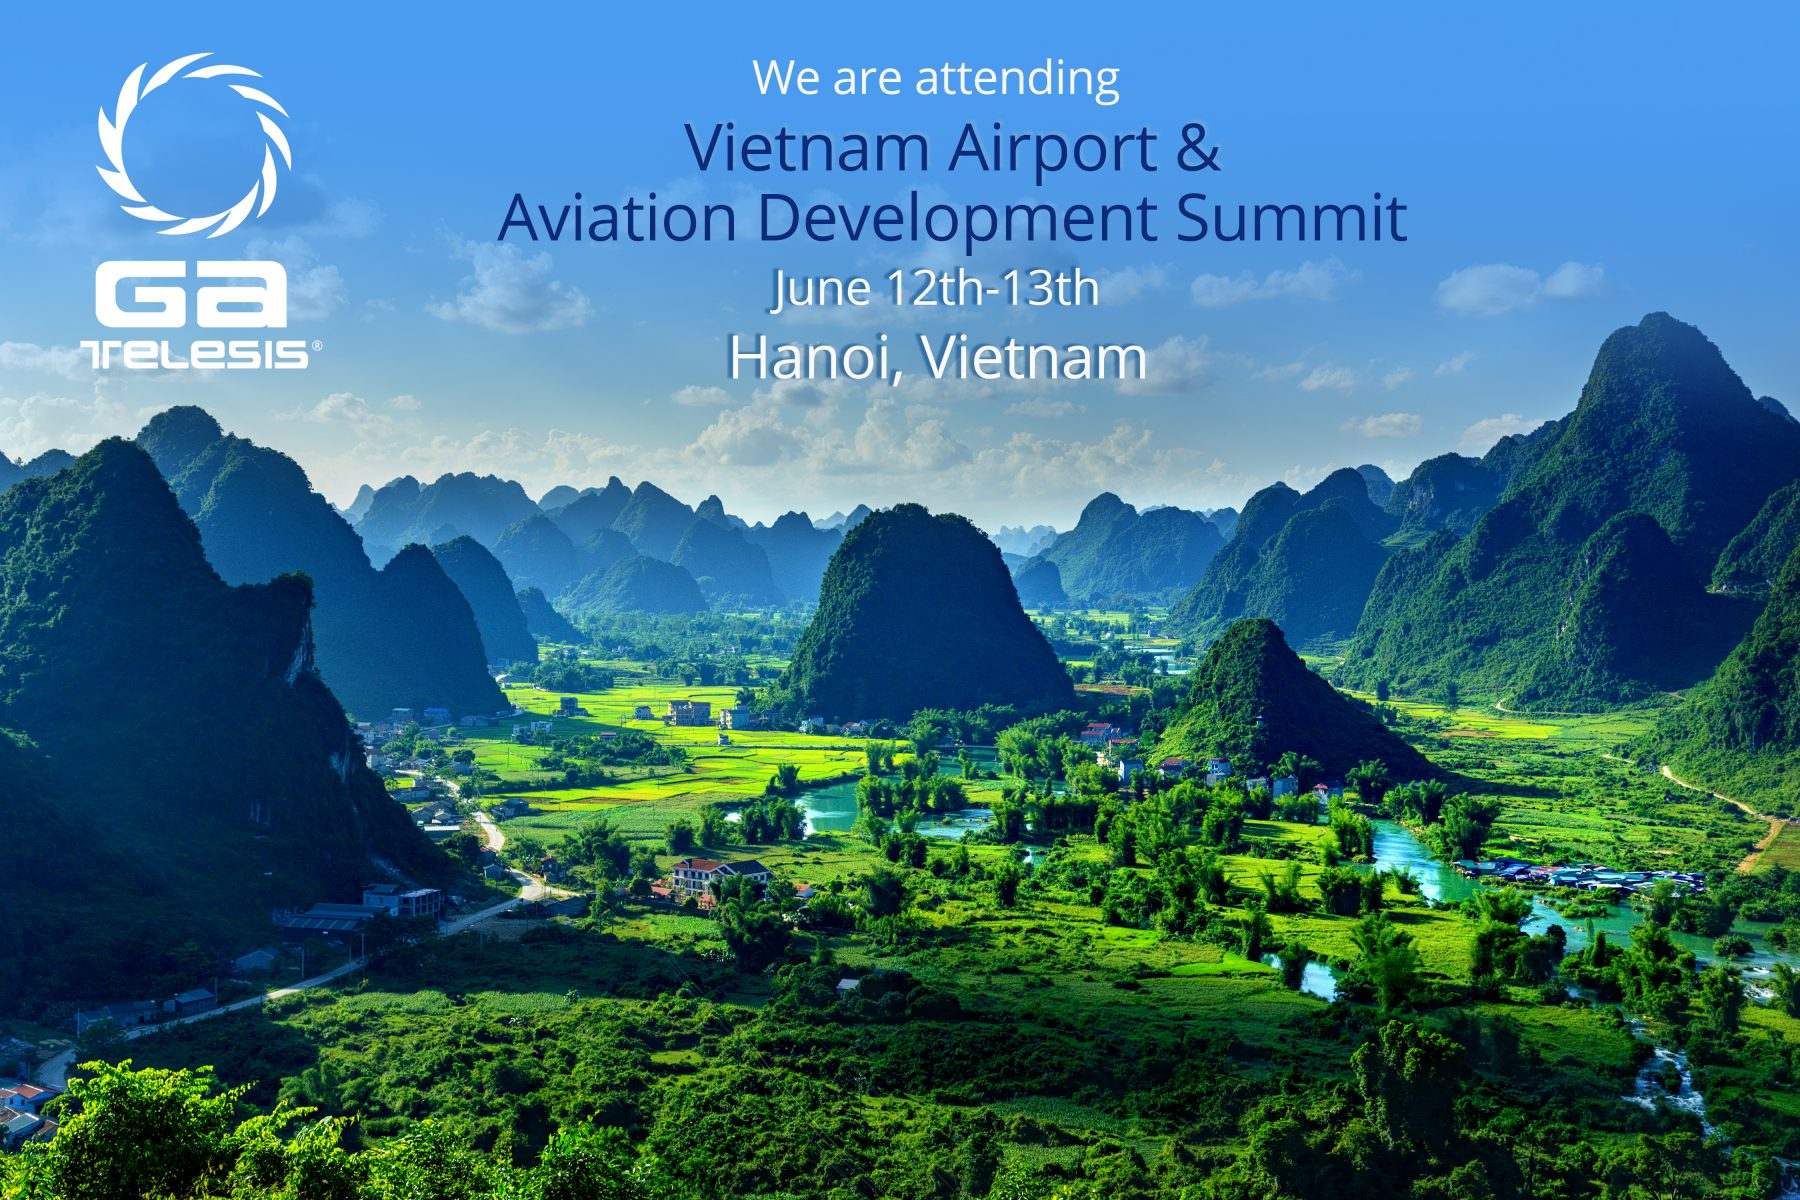 Vietnam Airport & Aviation Dev Summit